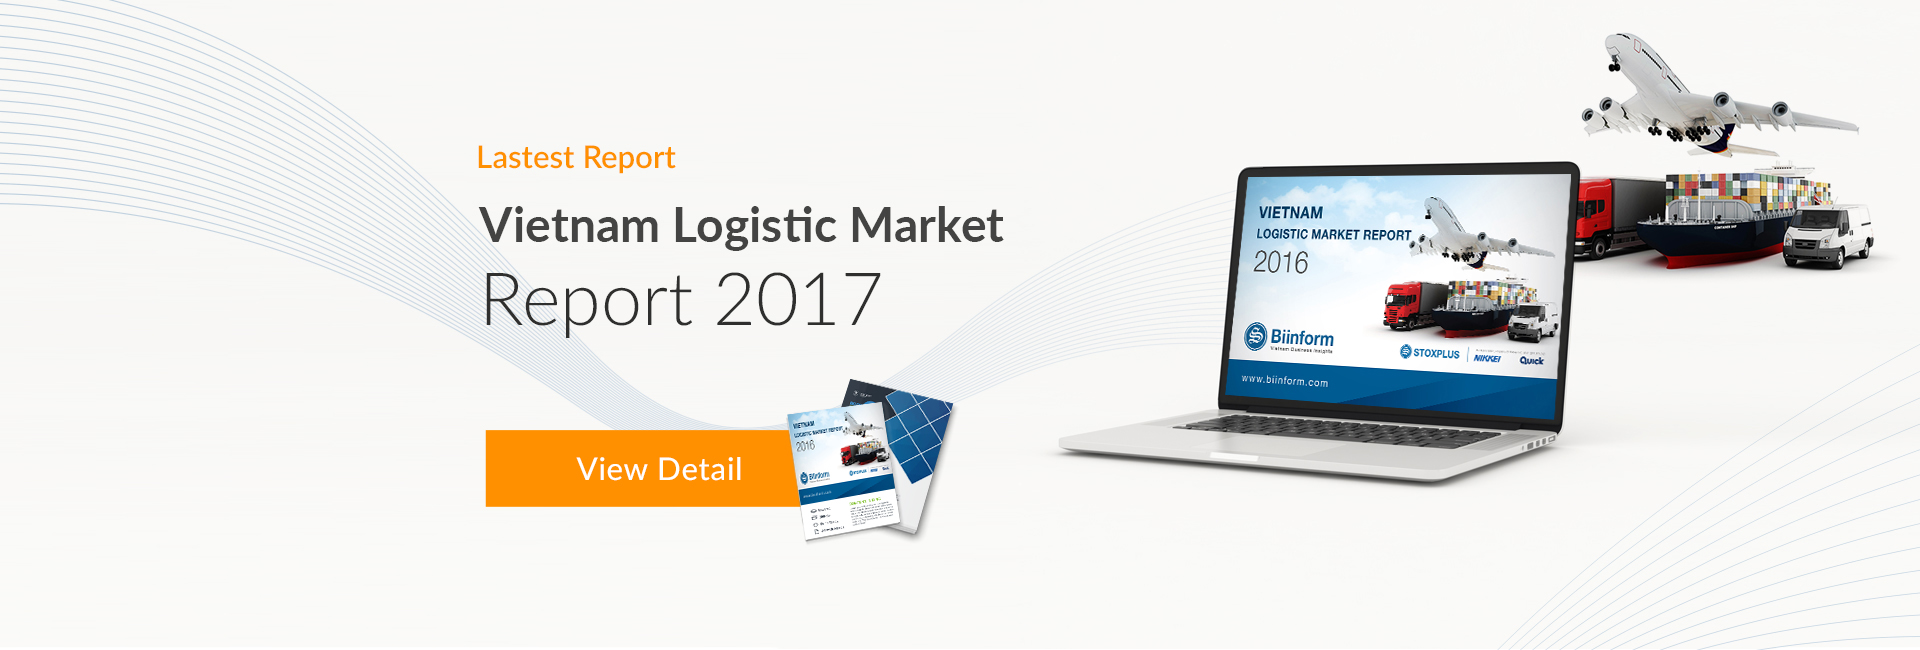 Vietnam Logistics Report 2016